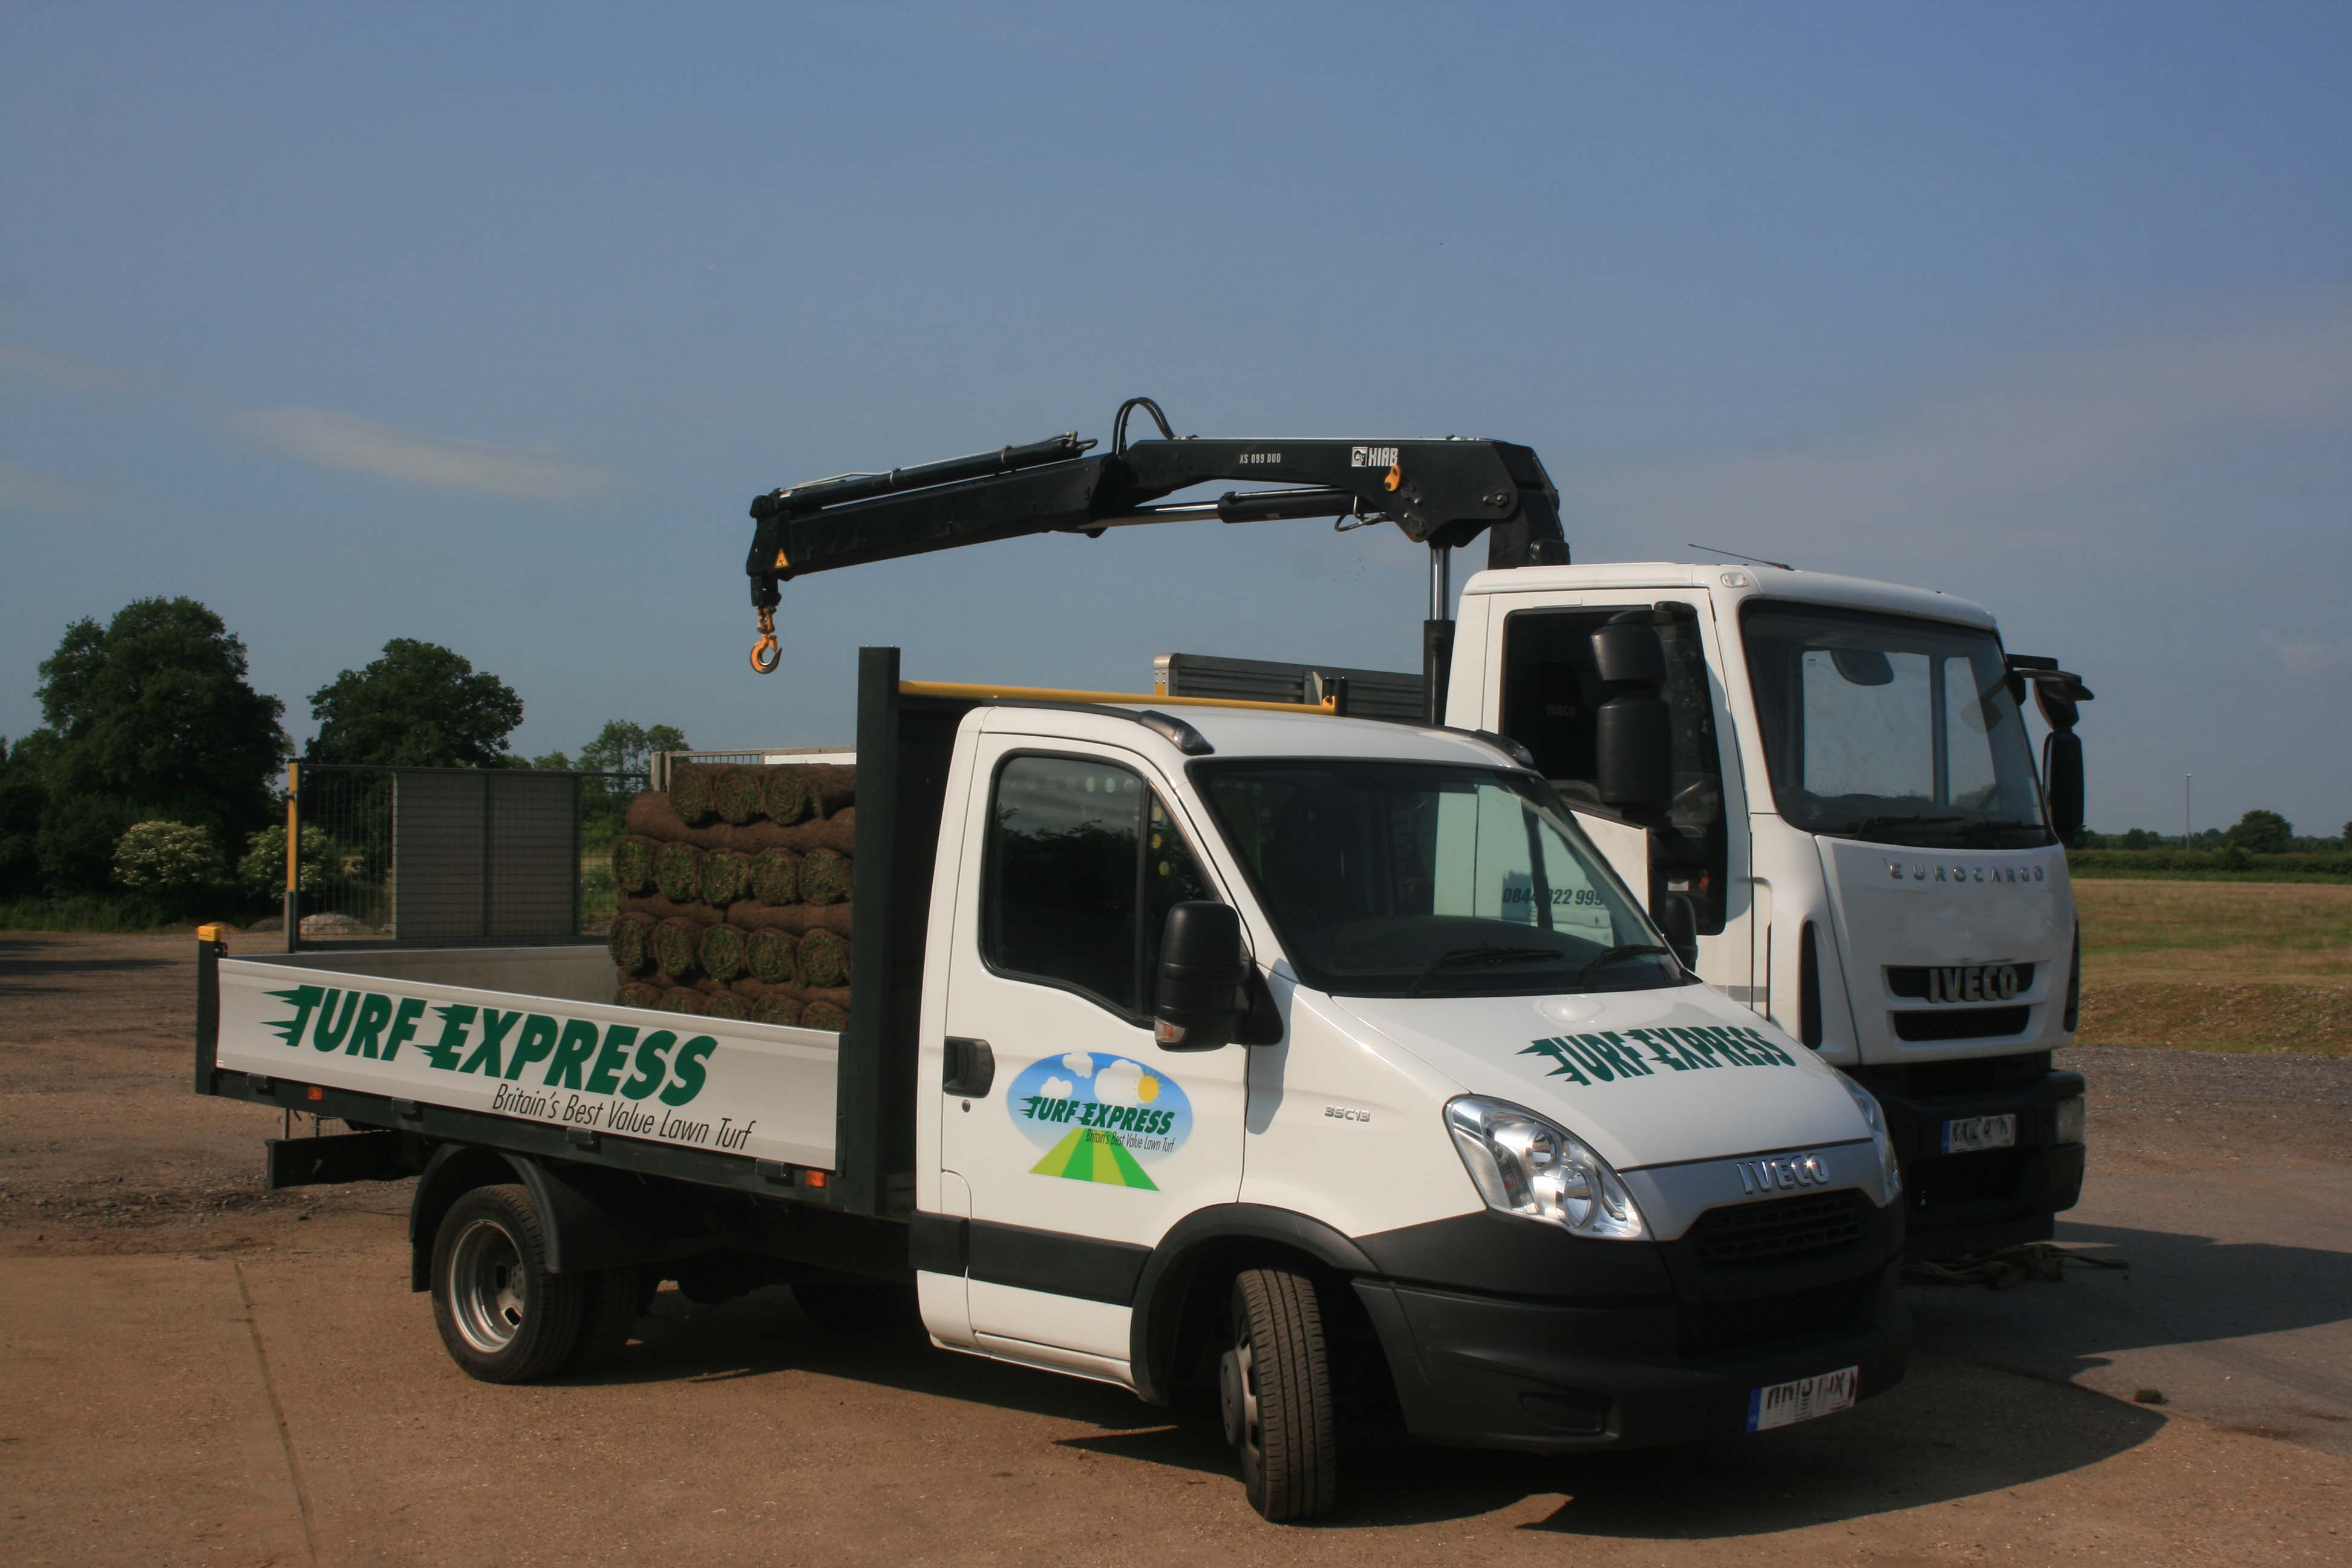 Turf Express Delivery Truck